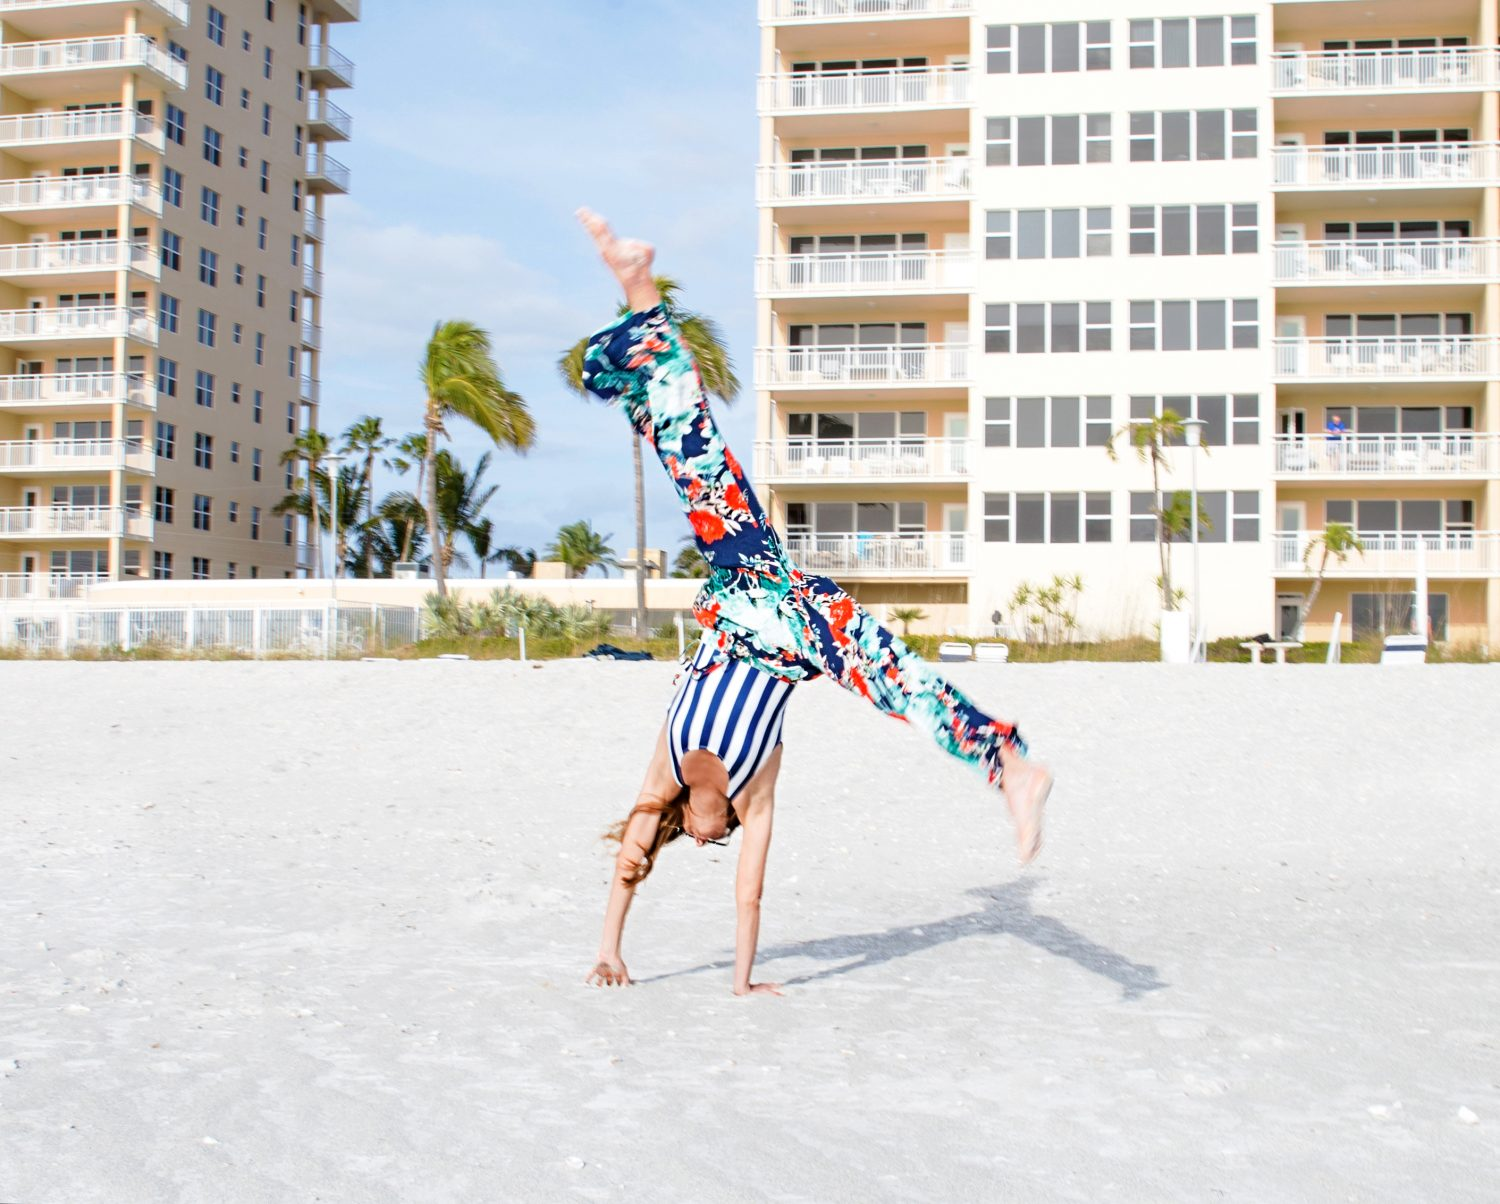 The Motherchic wearing solid and striped one piece bathing suit